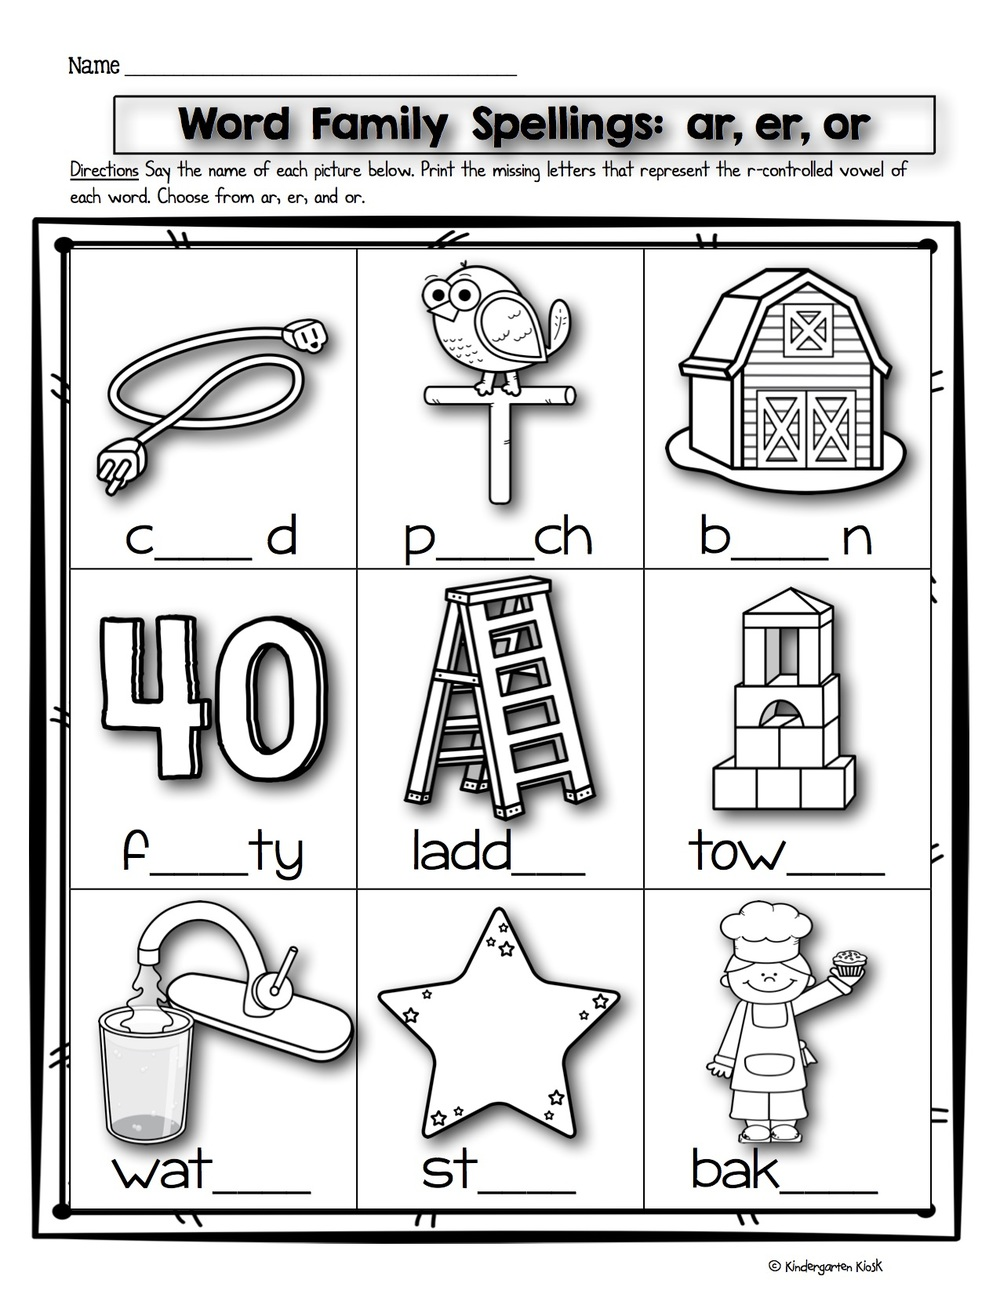 Bossy R Sorting Worksheet by Crazy for Classical | TpT